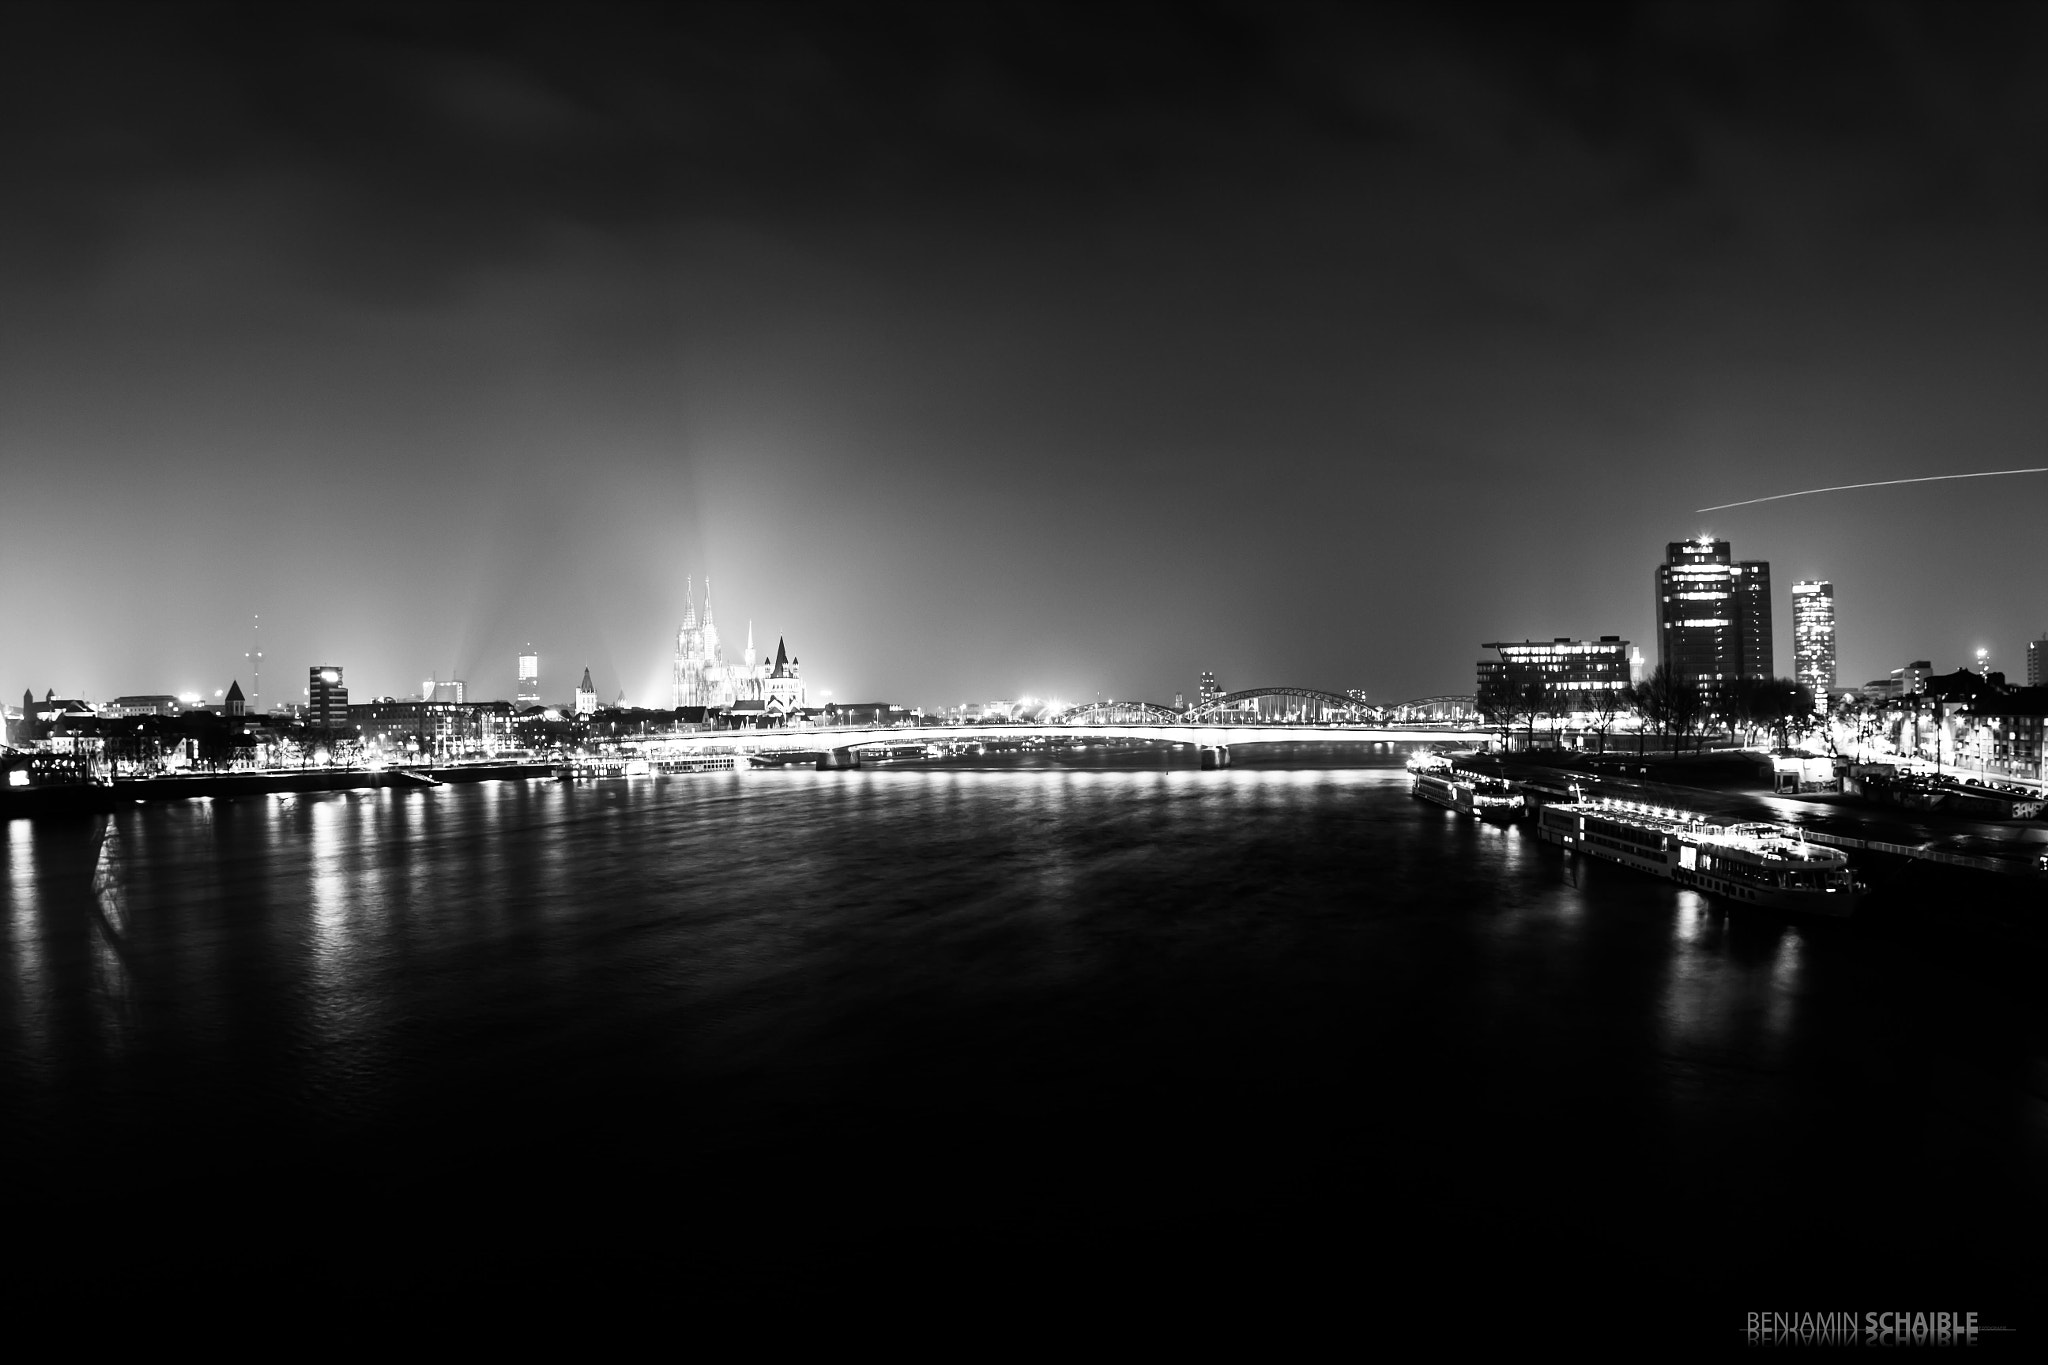 Photograph cologne at night_b&w by Benjamin Schaible on 500px